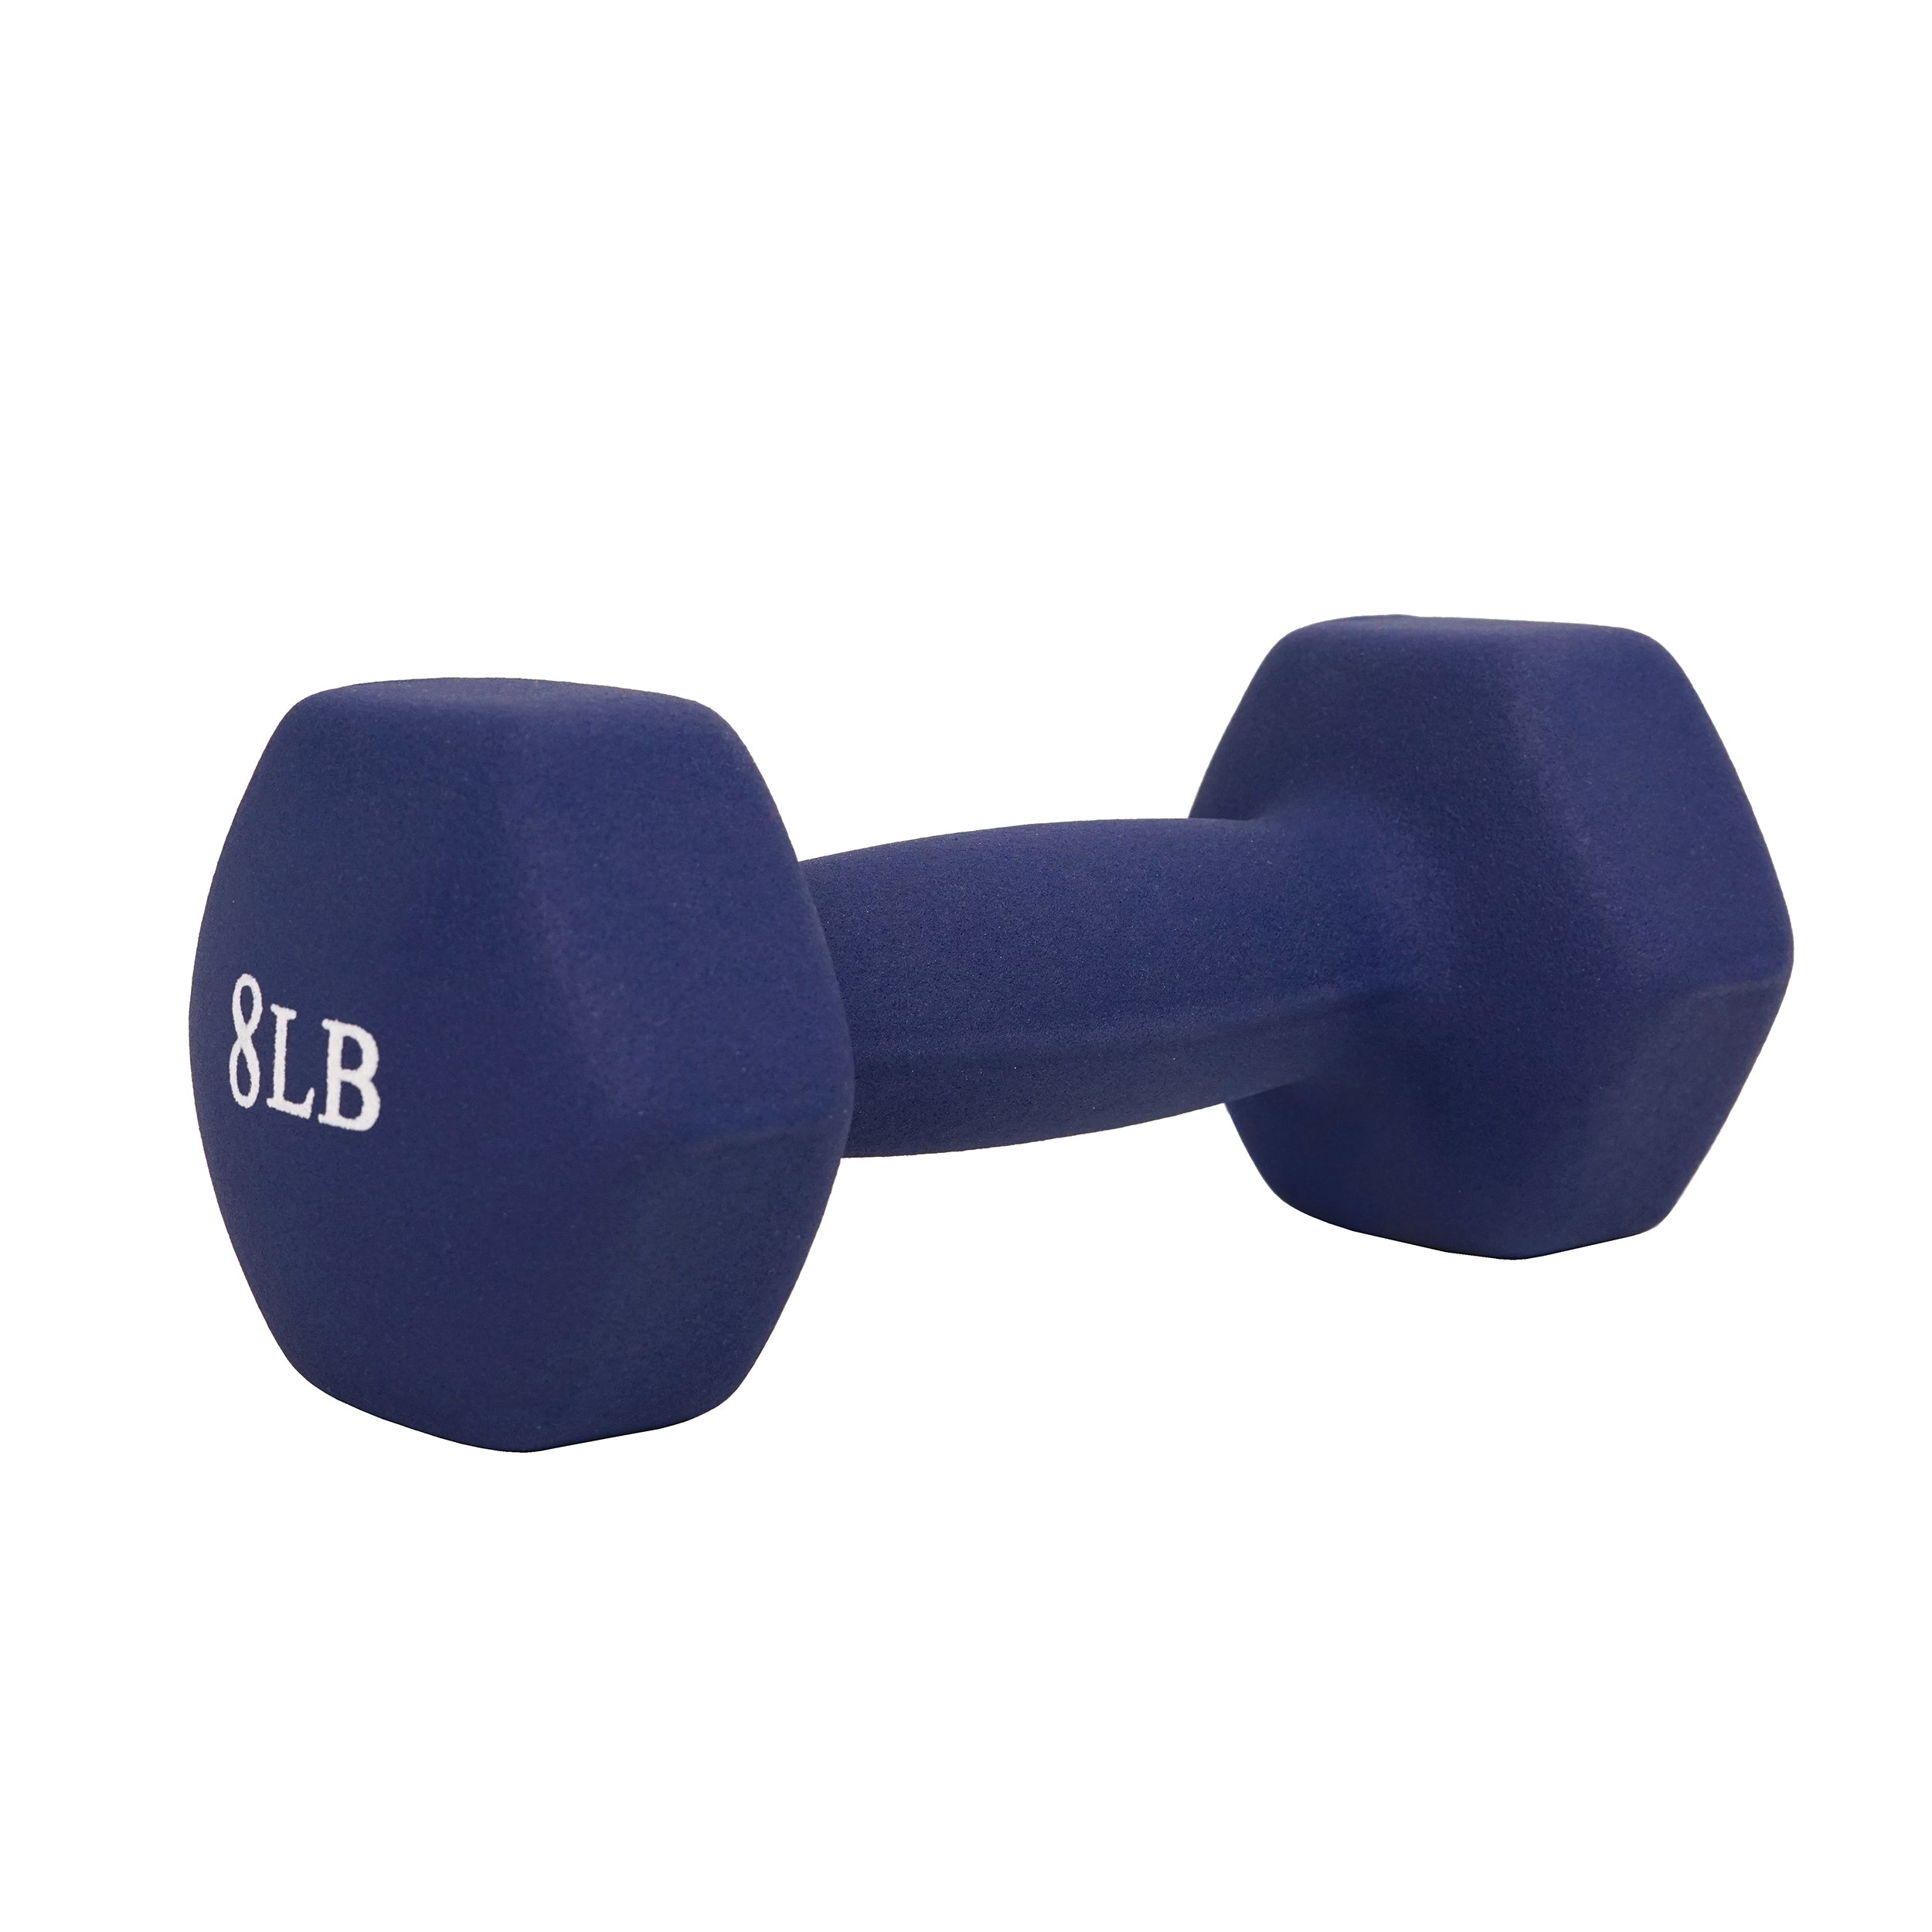 sunny-health-fitness-strength-neoprene-dumbbell-pair-No.021-Pair-ergonomic